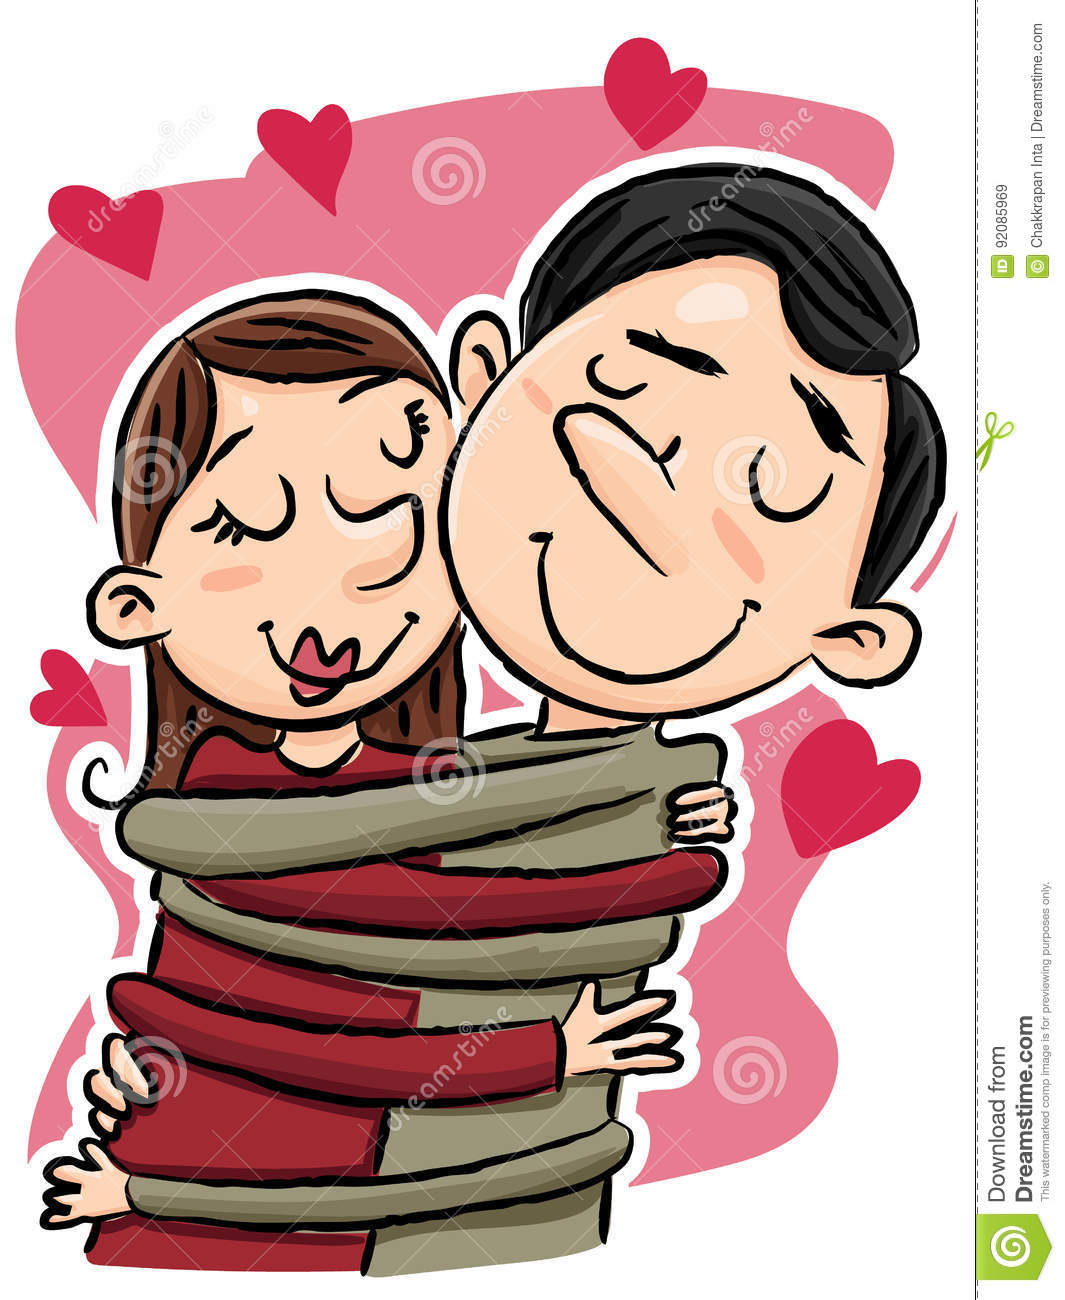 Cartoon Hugging Couple Stock Vector Illustration Of Love 92085969